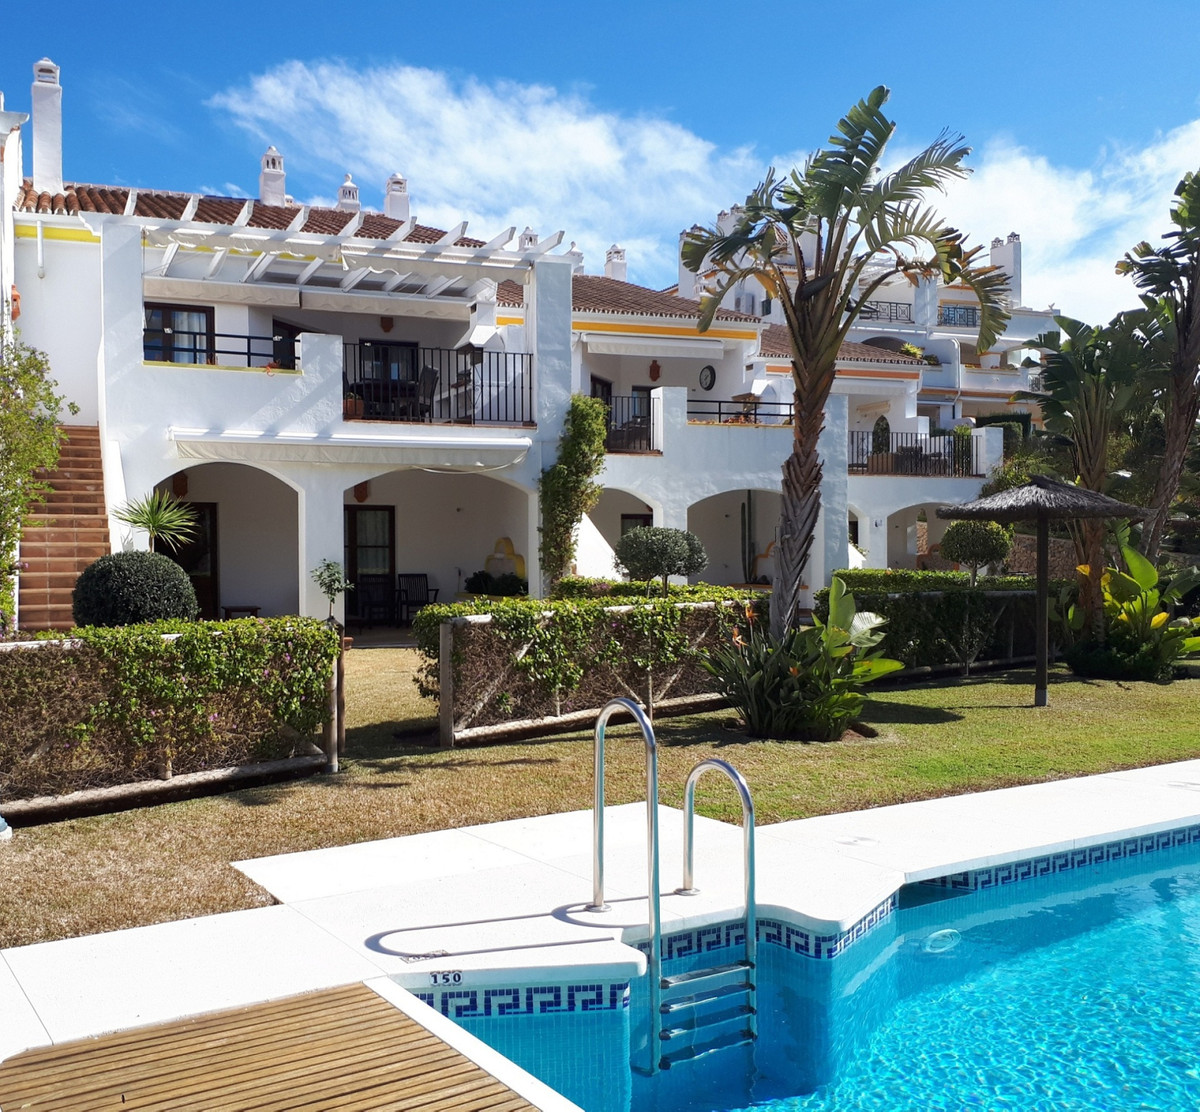 FRONTLINE MIRAFLORES GOLF COURSE This spacious and bright townhouse is located in the heart of the q, Spain